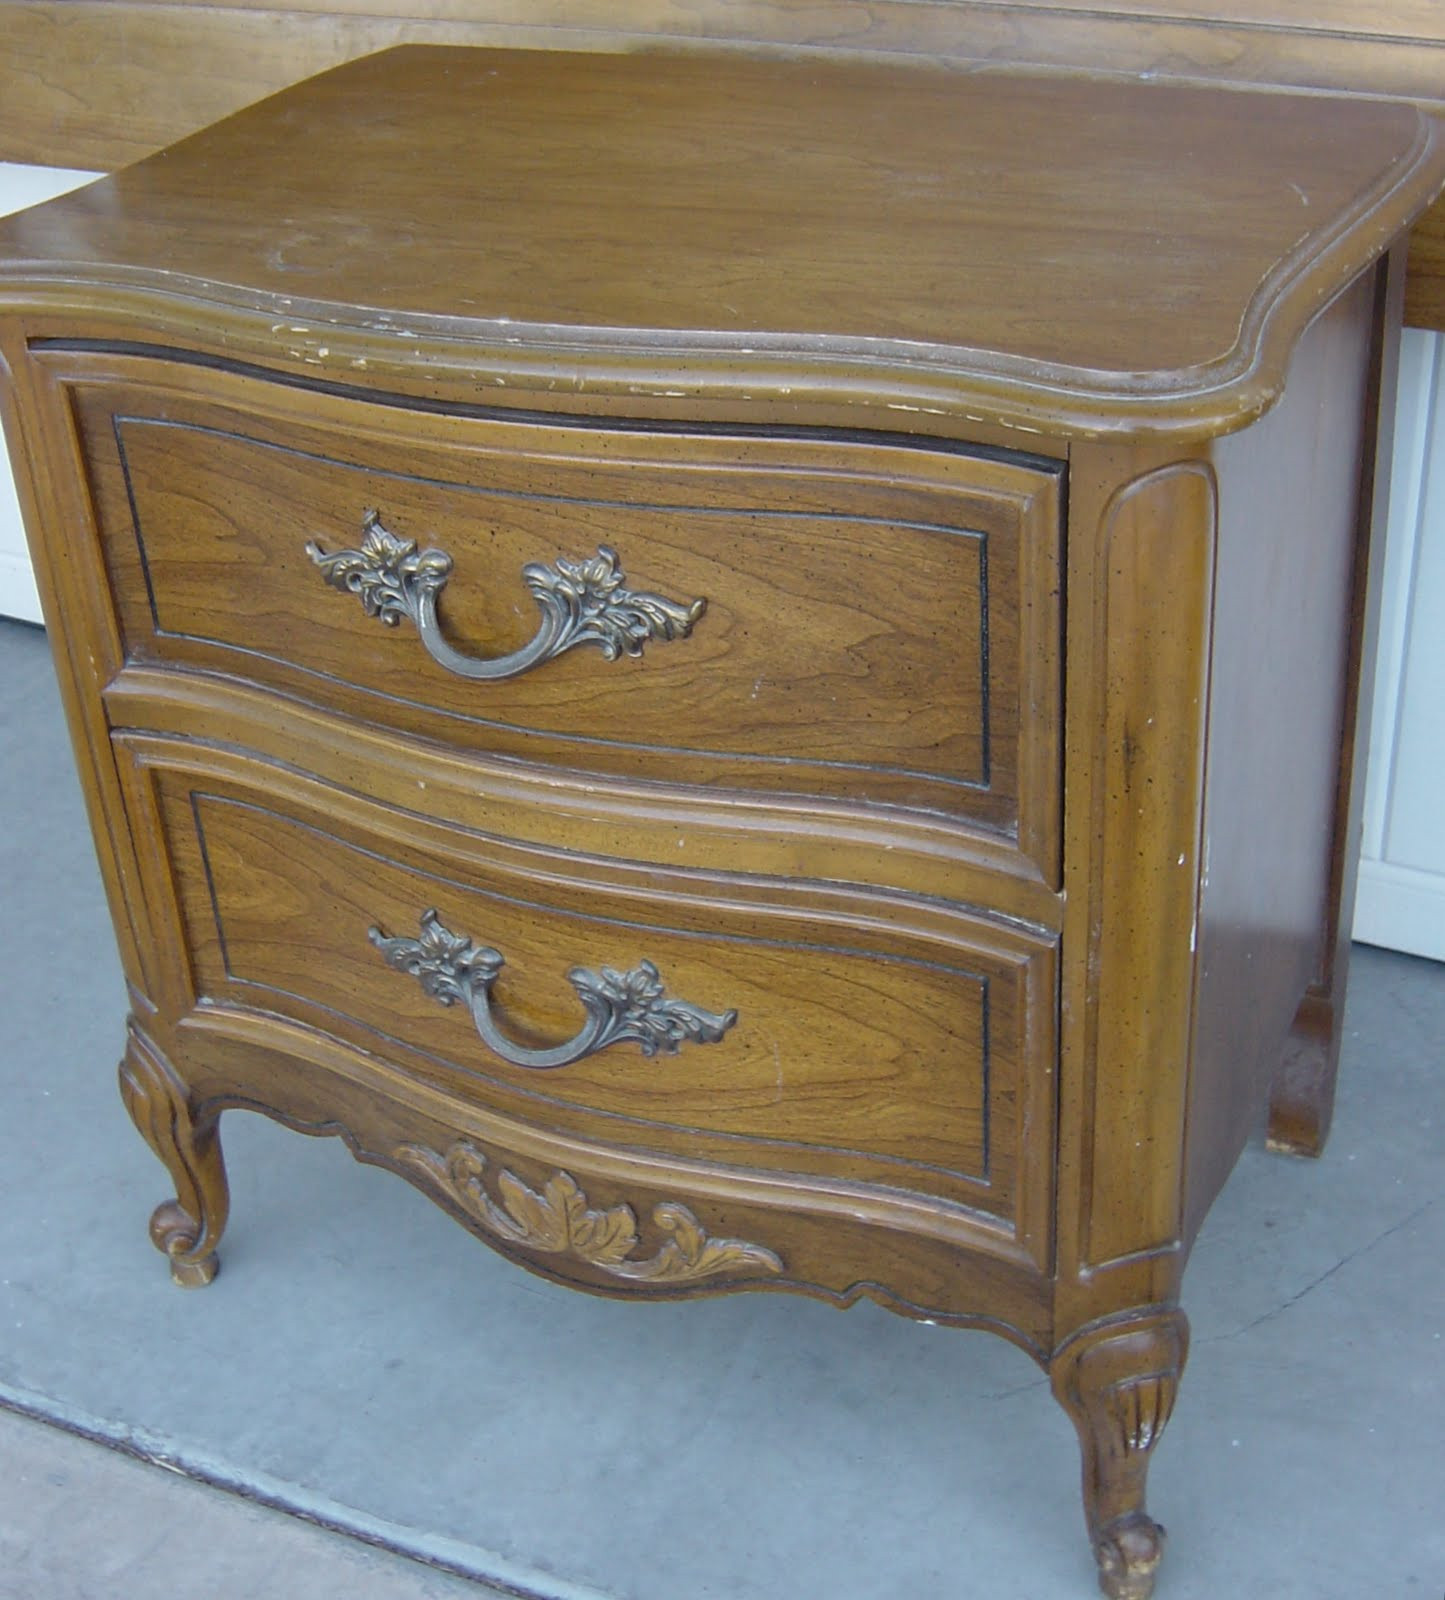 Best ideas about French Provincial Bedroom Set . Save or Pin The Backyard Boutique by Five to Nine Furnishings Vintage Now.